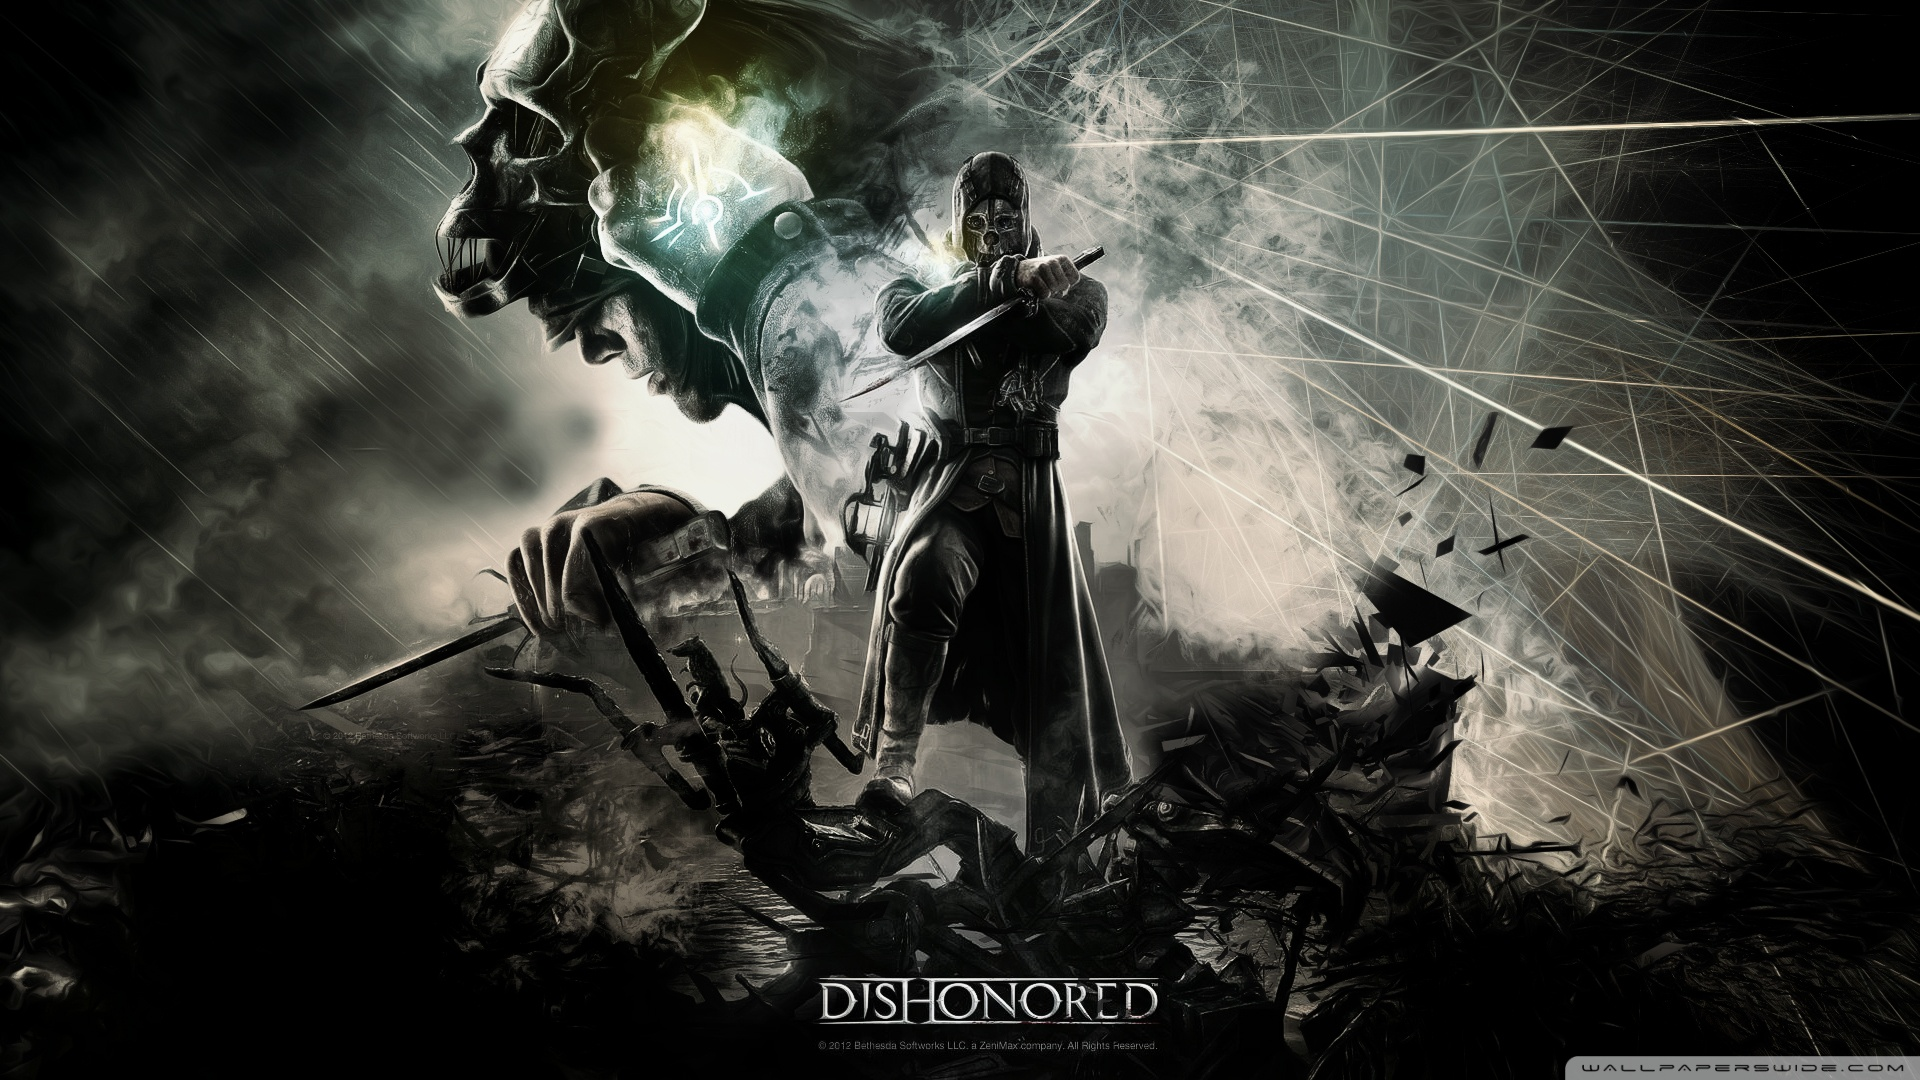 Dishonored Video Game Wallpaper 1920x1080 Dishonored Video Game 1920x1080